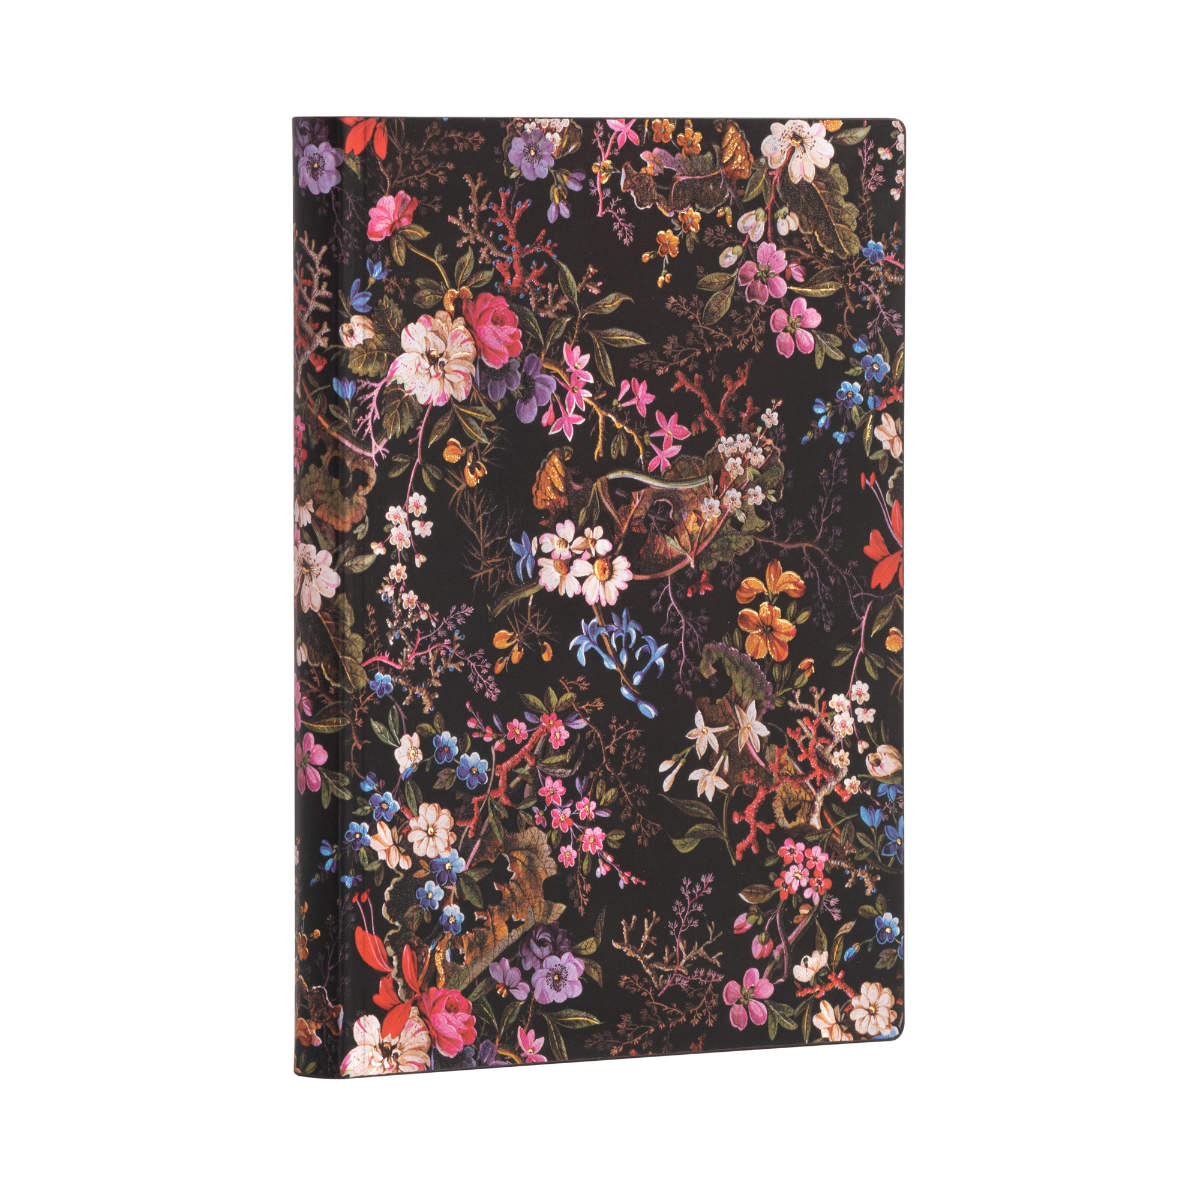 Paperblanks Flexis Midi Floralia 5 x 7 Inch Journal